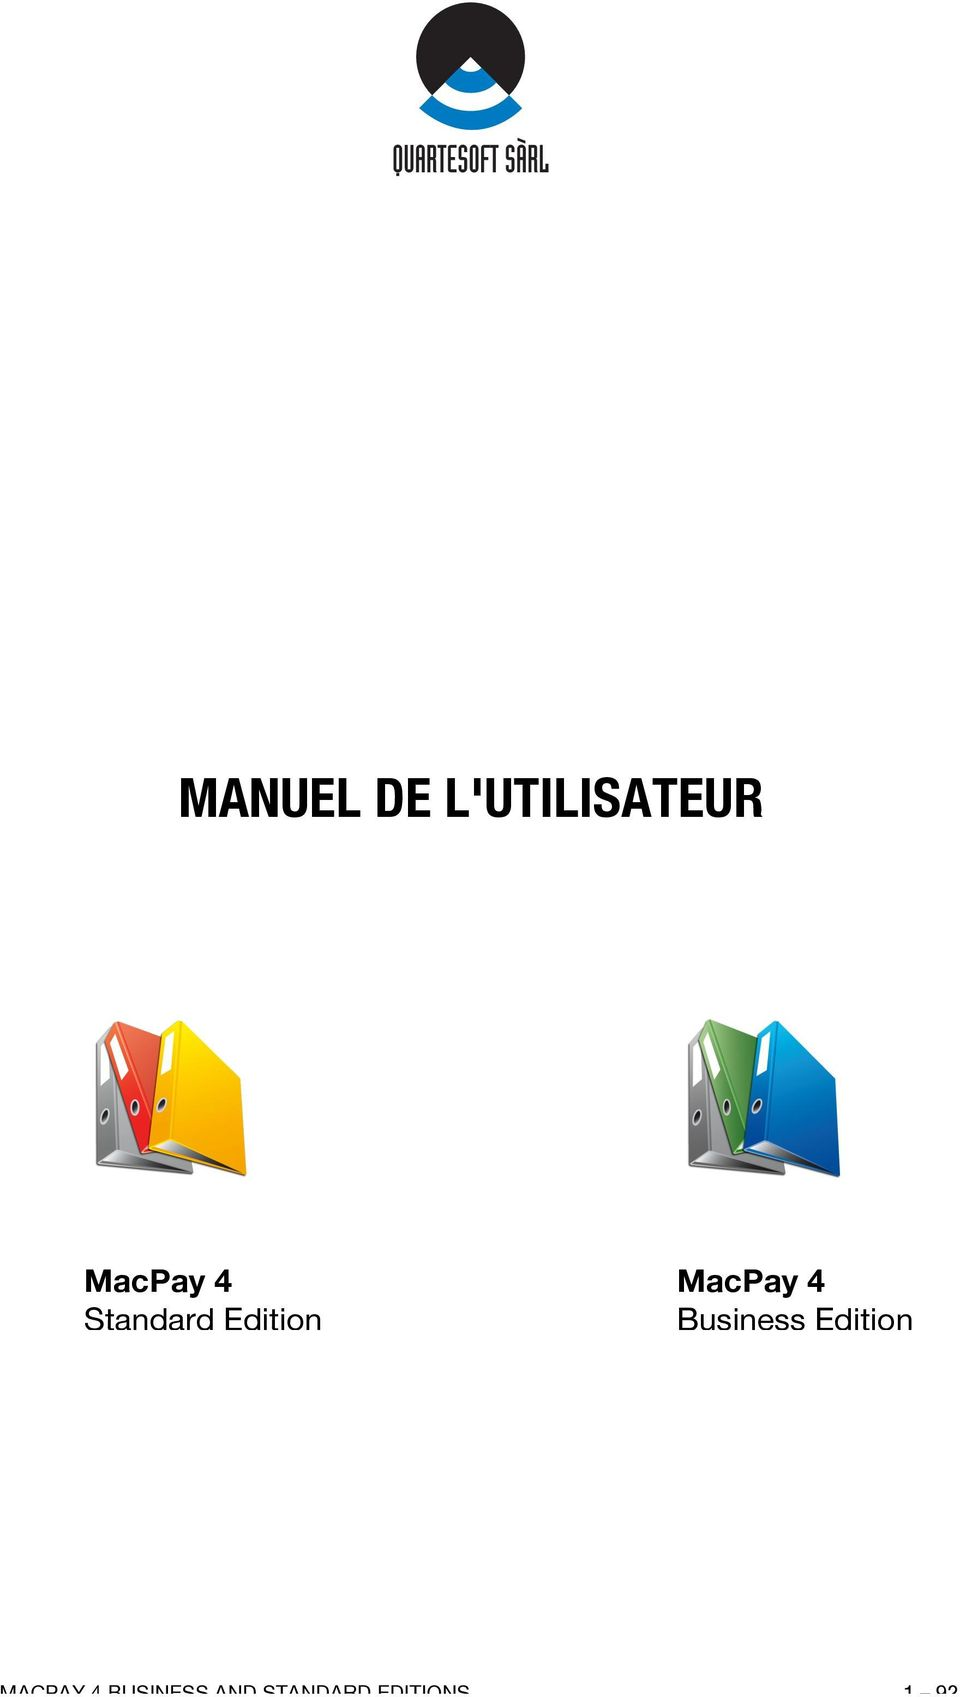 MacPay 4 Business Edition